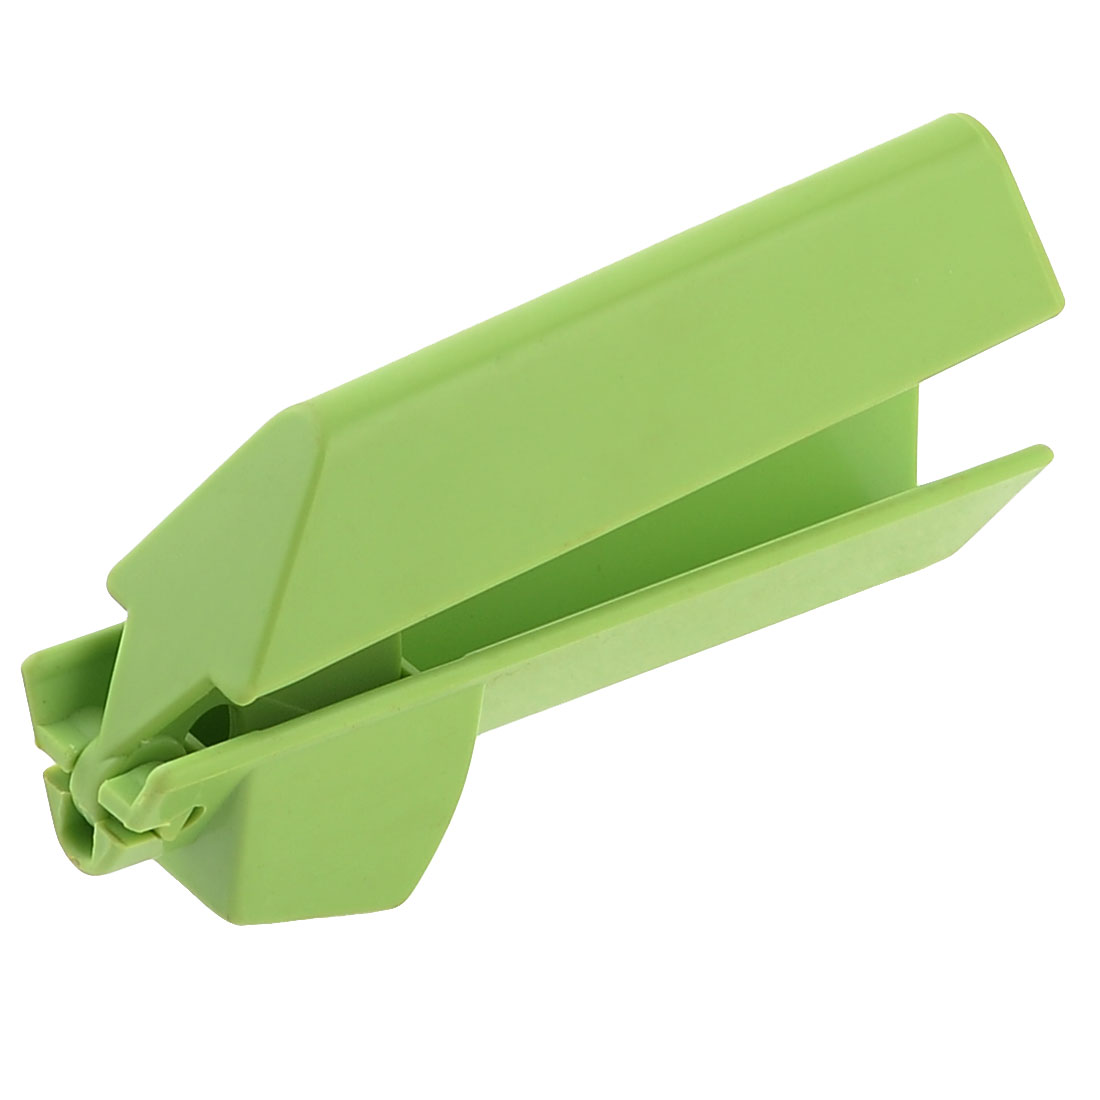 Green Plastic Handgrip Hand Press Container Onion Garlic Cutter Tool